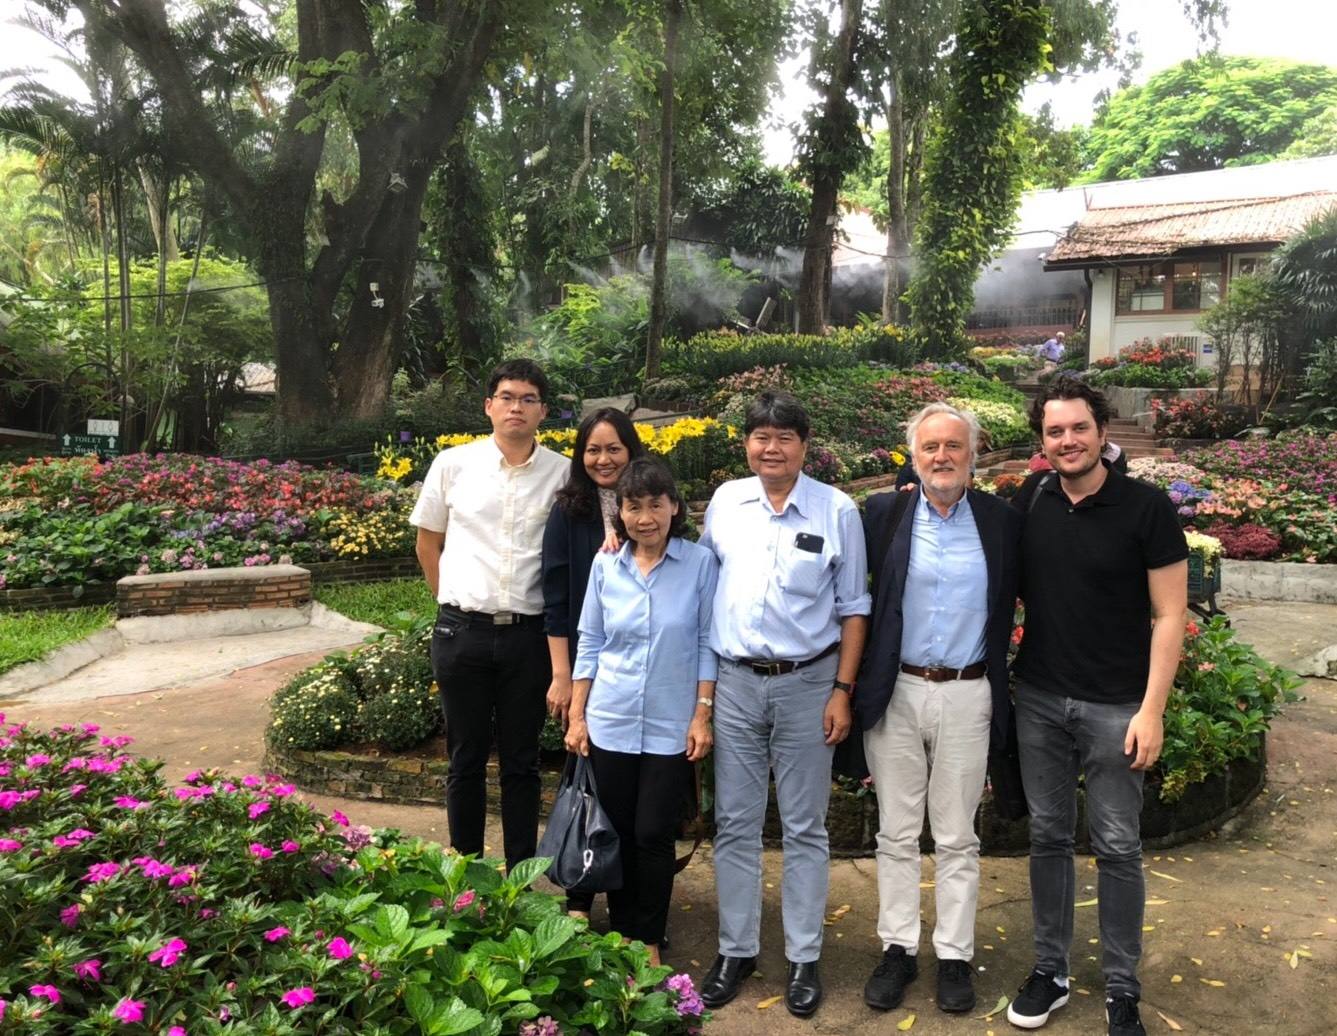 Mr. Jochen Seefried, Chairman and co-founder of Succevo Co. and Mr. Sebastain Seefried, Chief Marketing Officer of Succevo Co. together with Mrs. Wilaiwan Schroeder, former Advisor to Bayern International (BI) from Federal Republic of Germany have visited Manose Health and Beauty Research Center